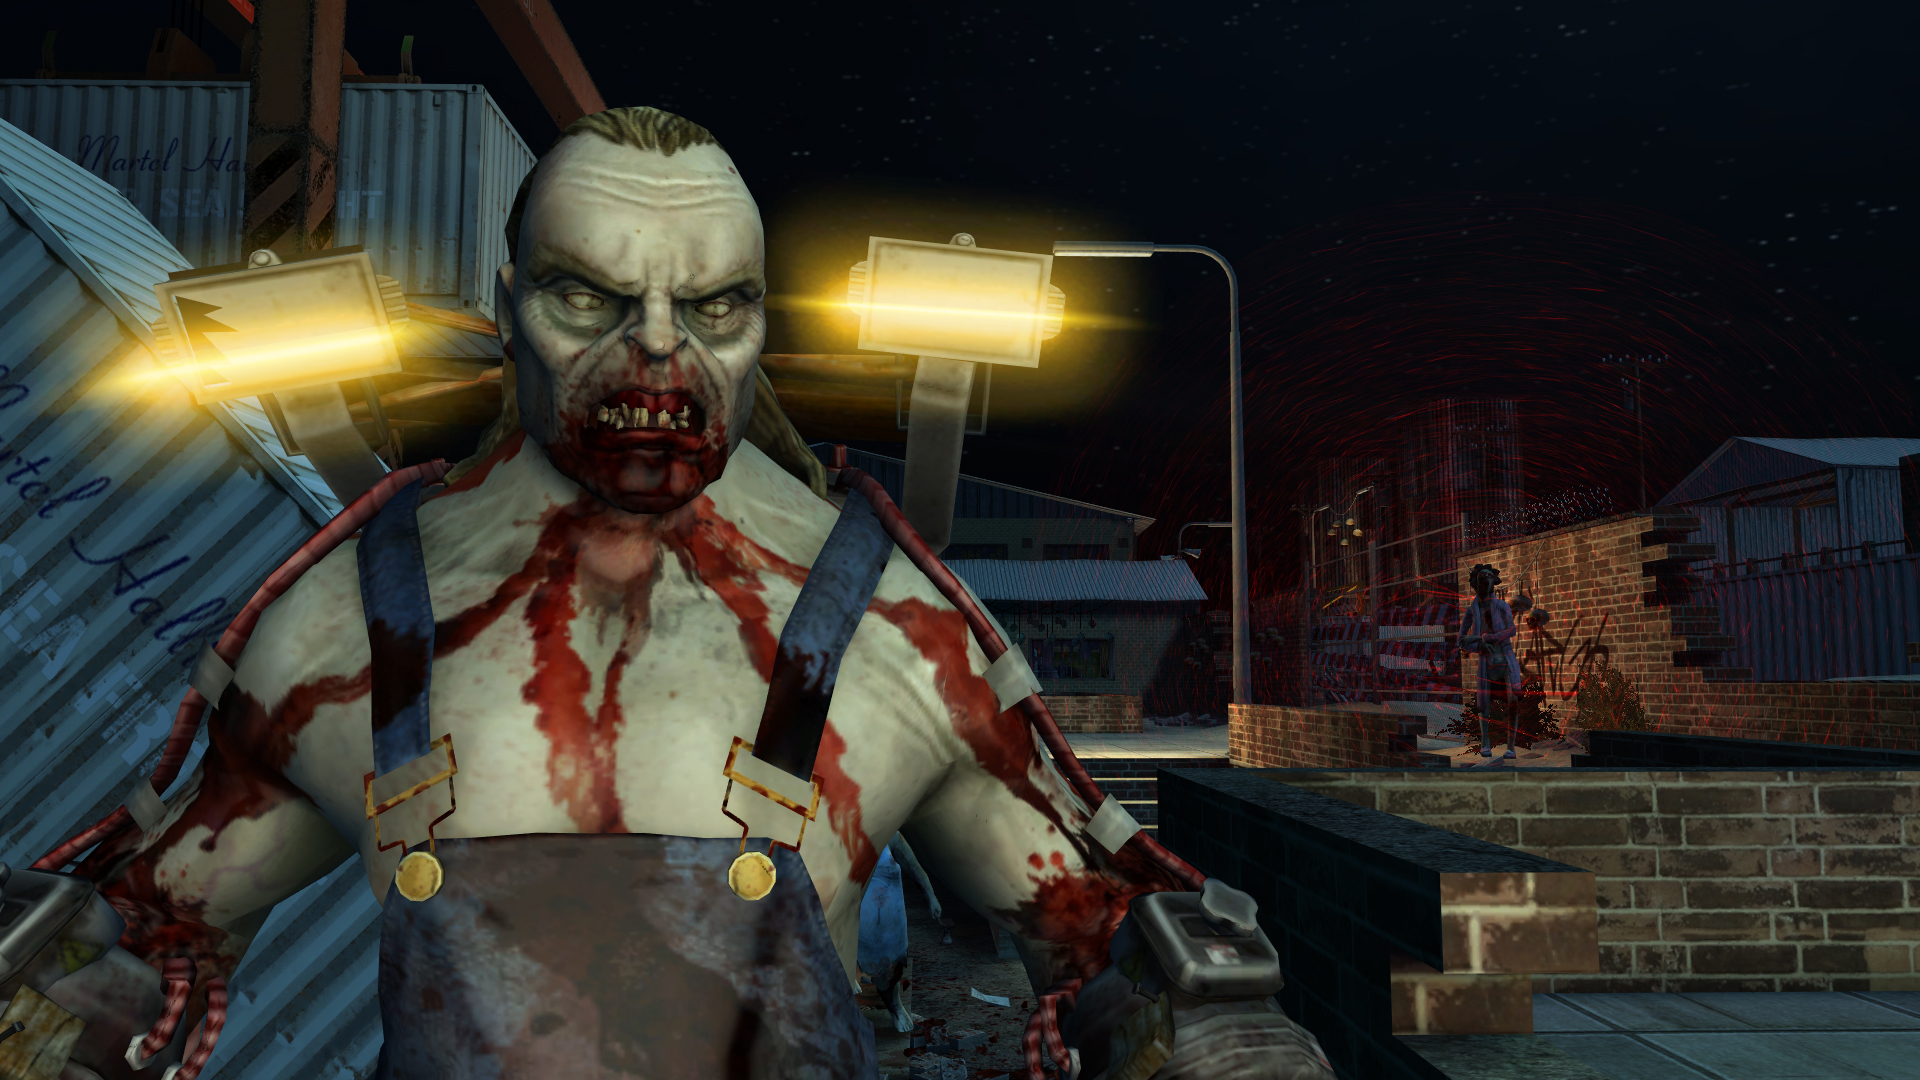 From Killing Floor to Fright Yard